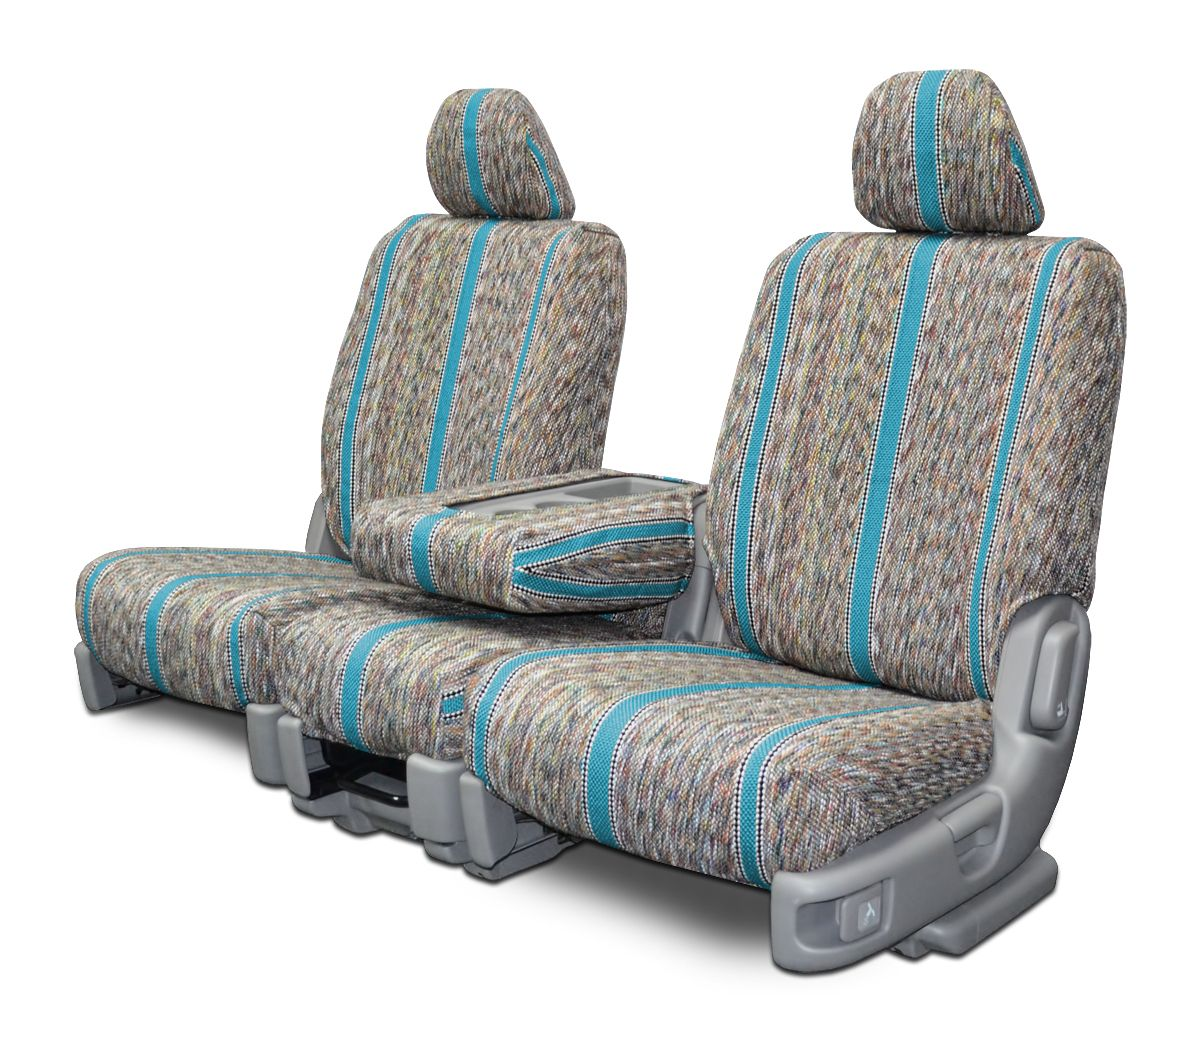 Saddle Blanket Seat Covers | Seat Covers Unlimited | Car Stuff ...